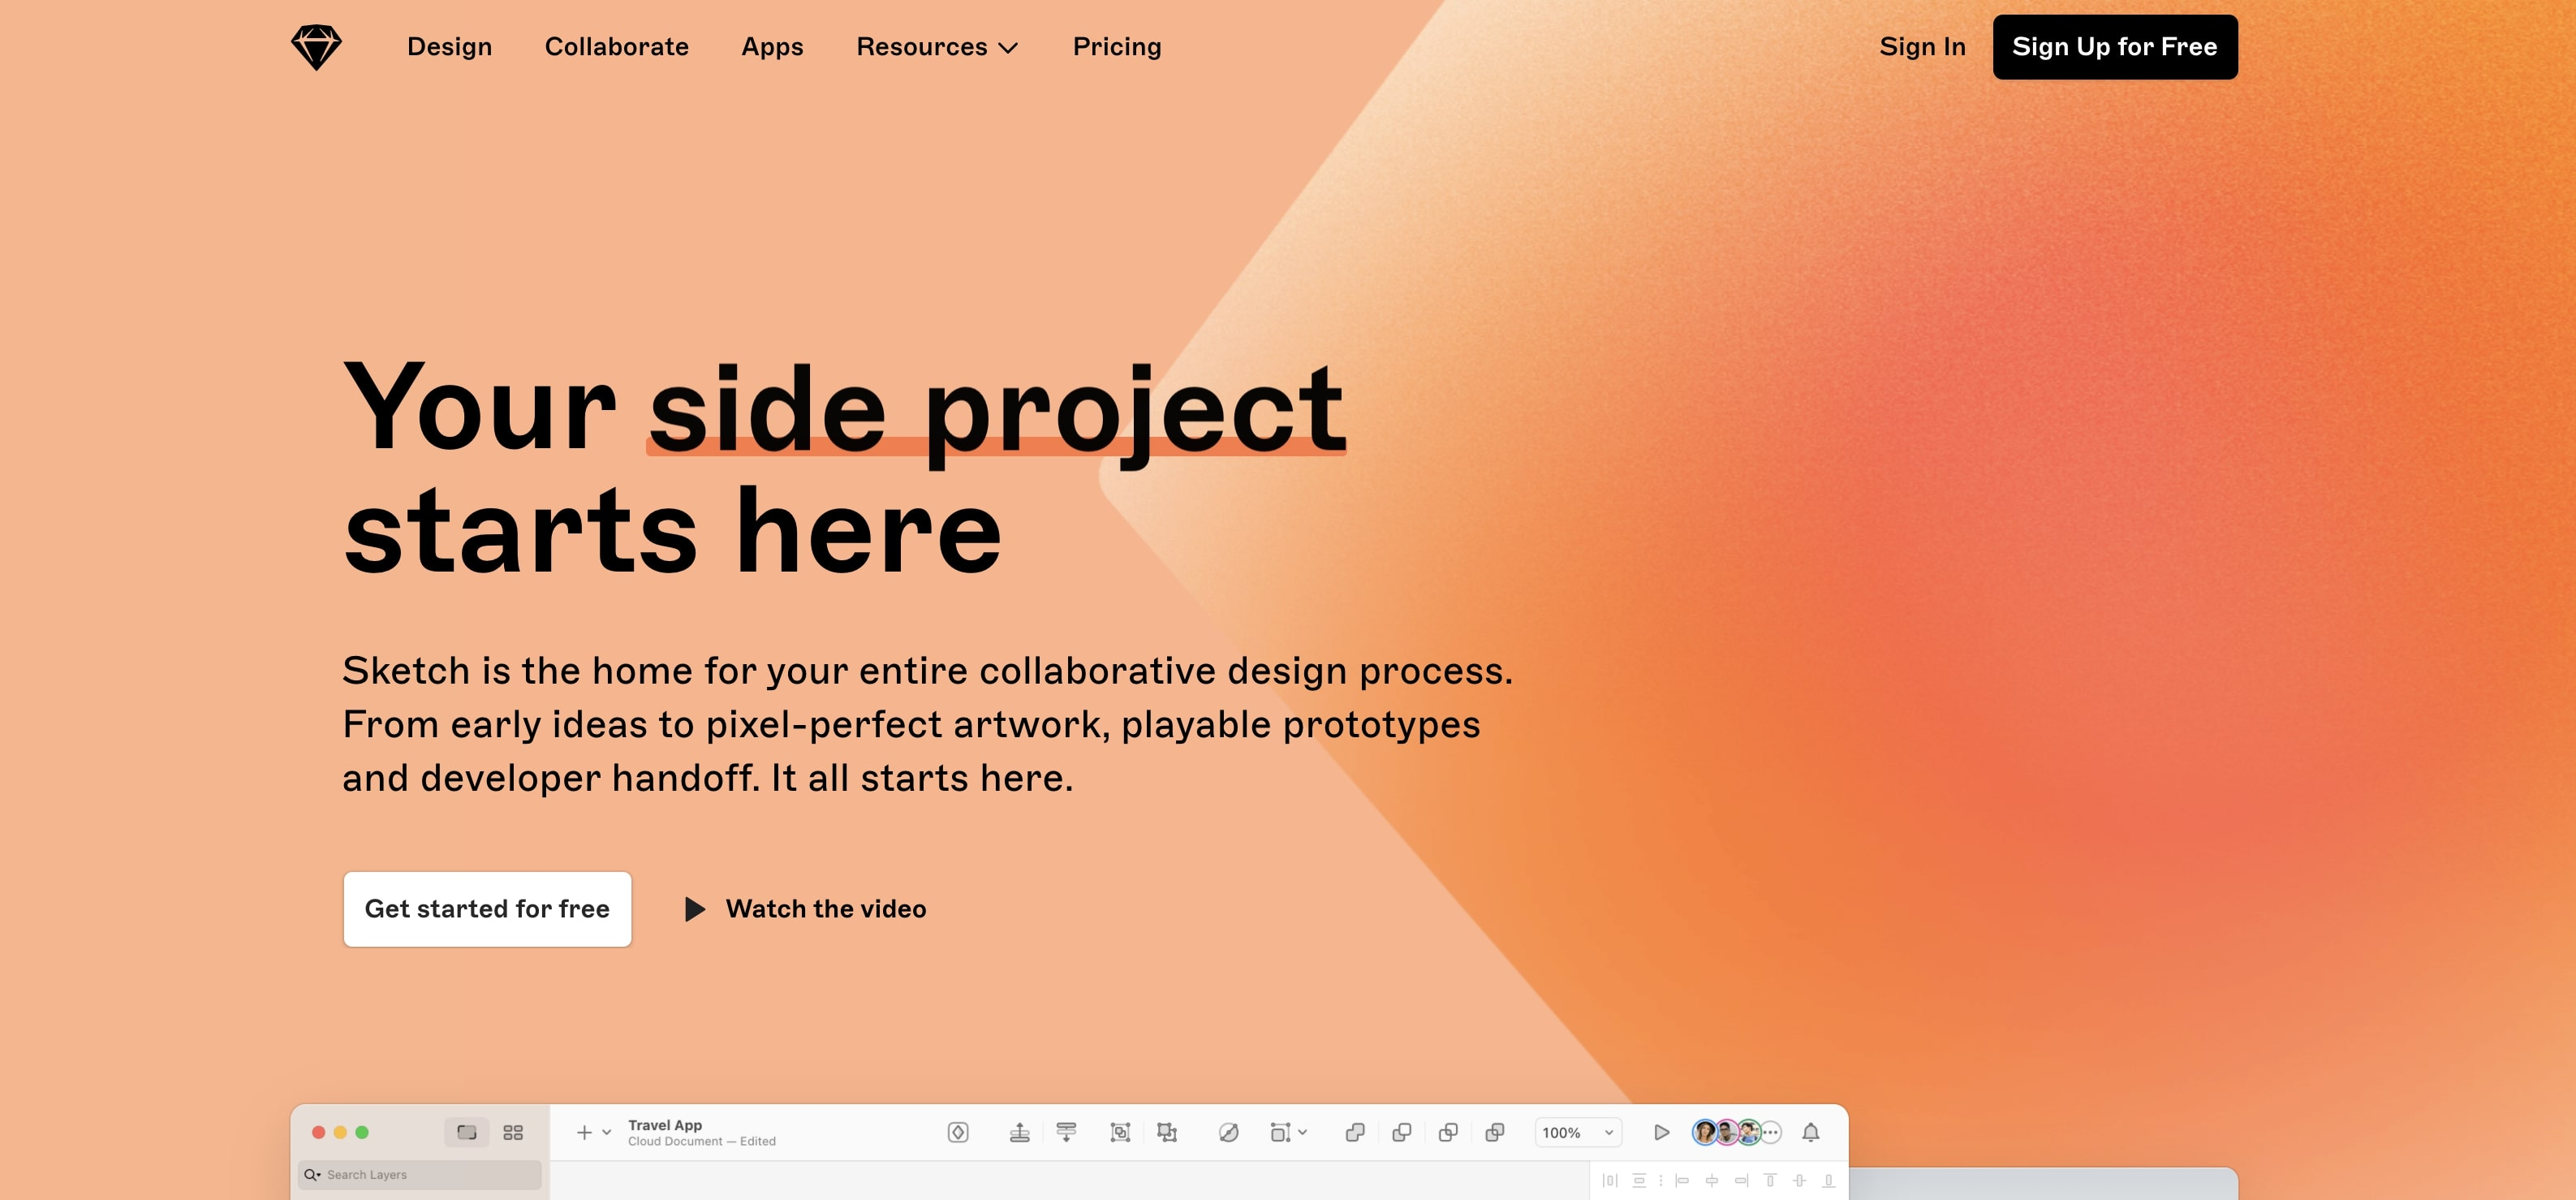 An image of the Sketch website.